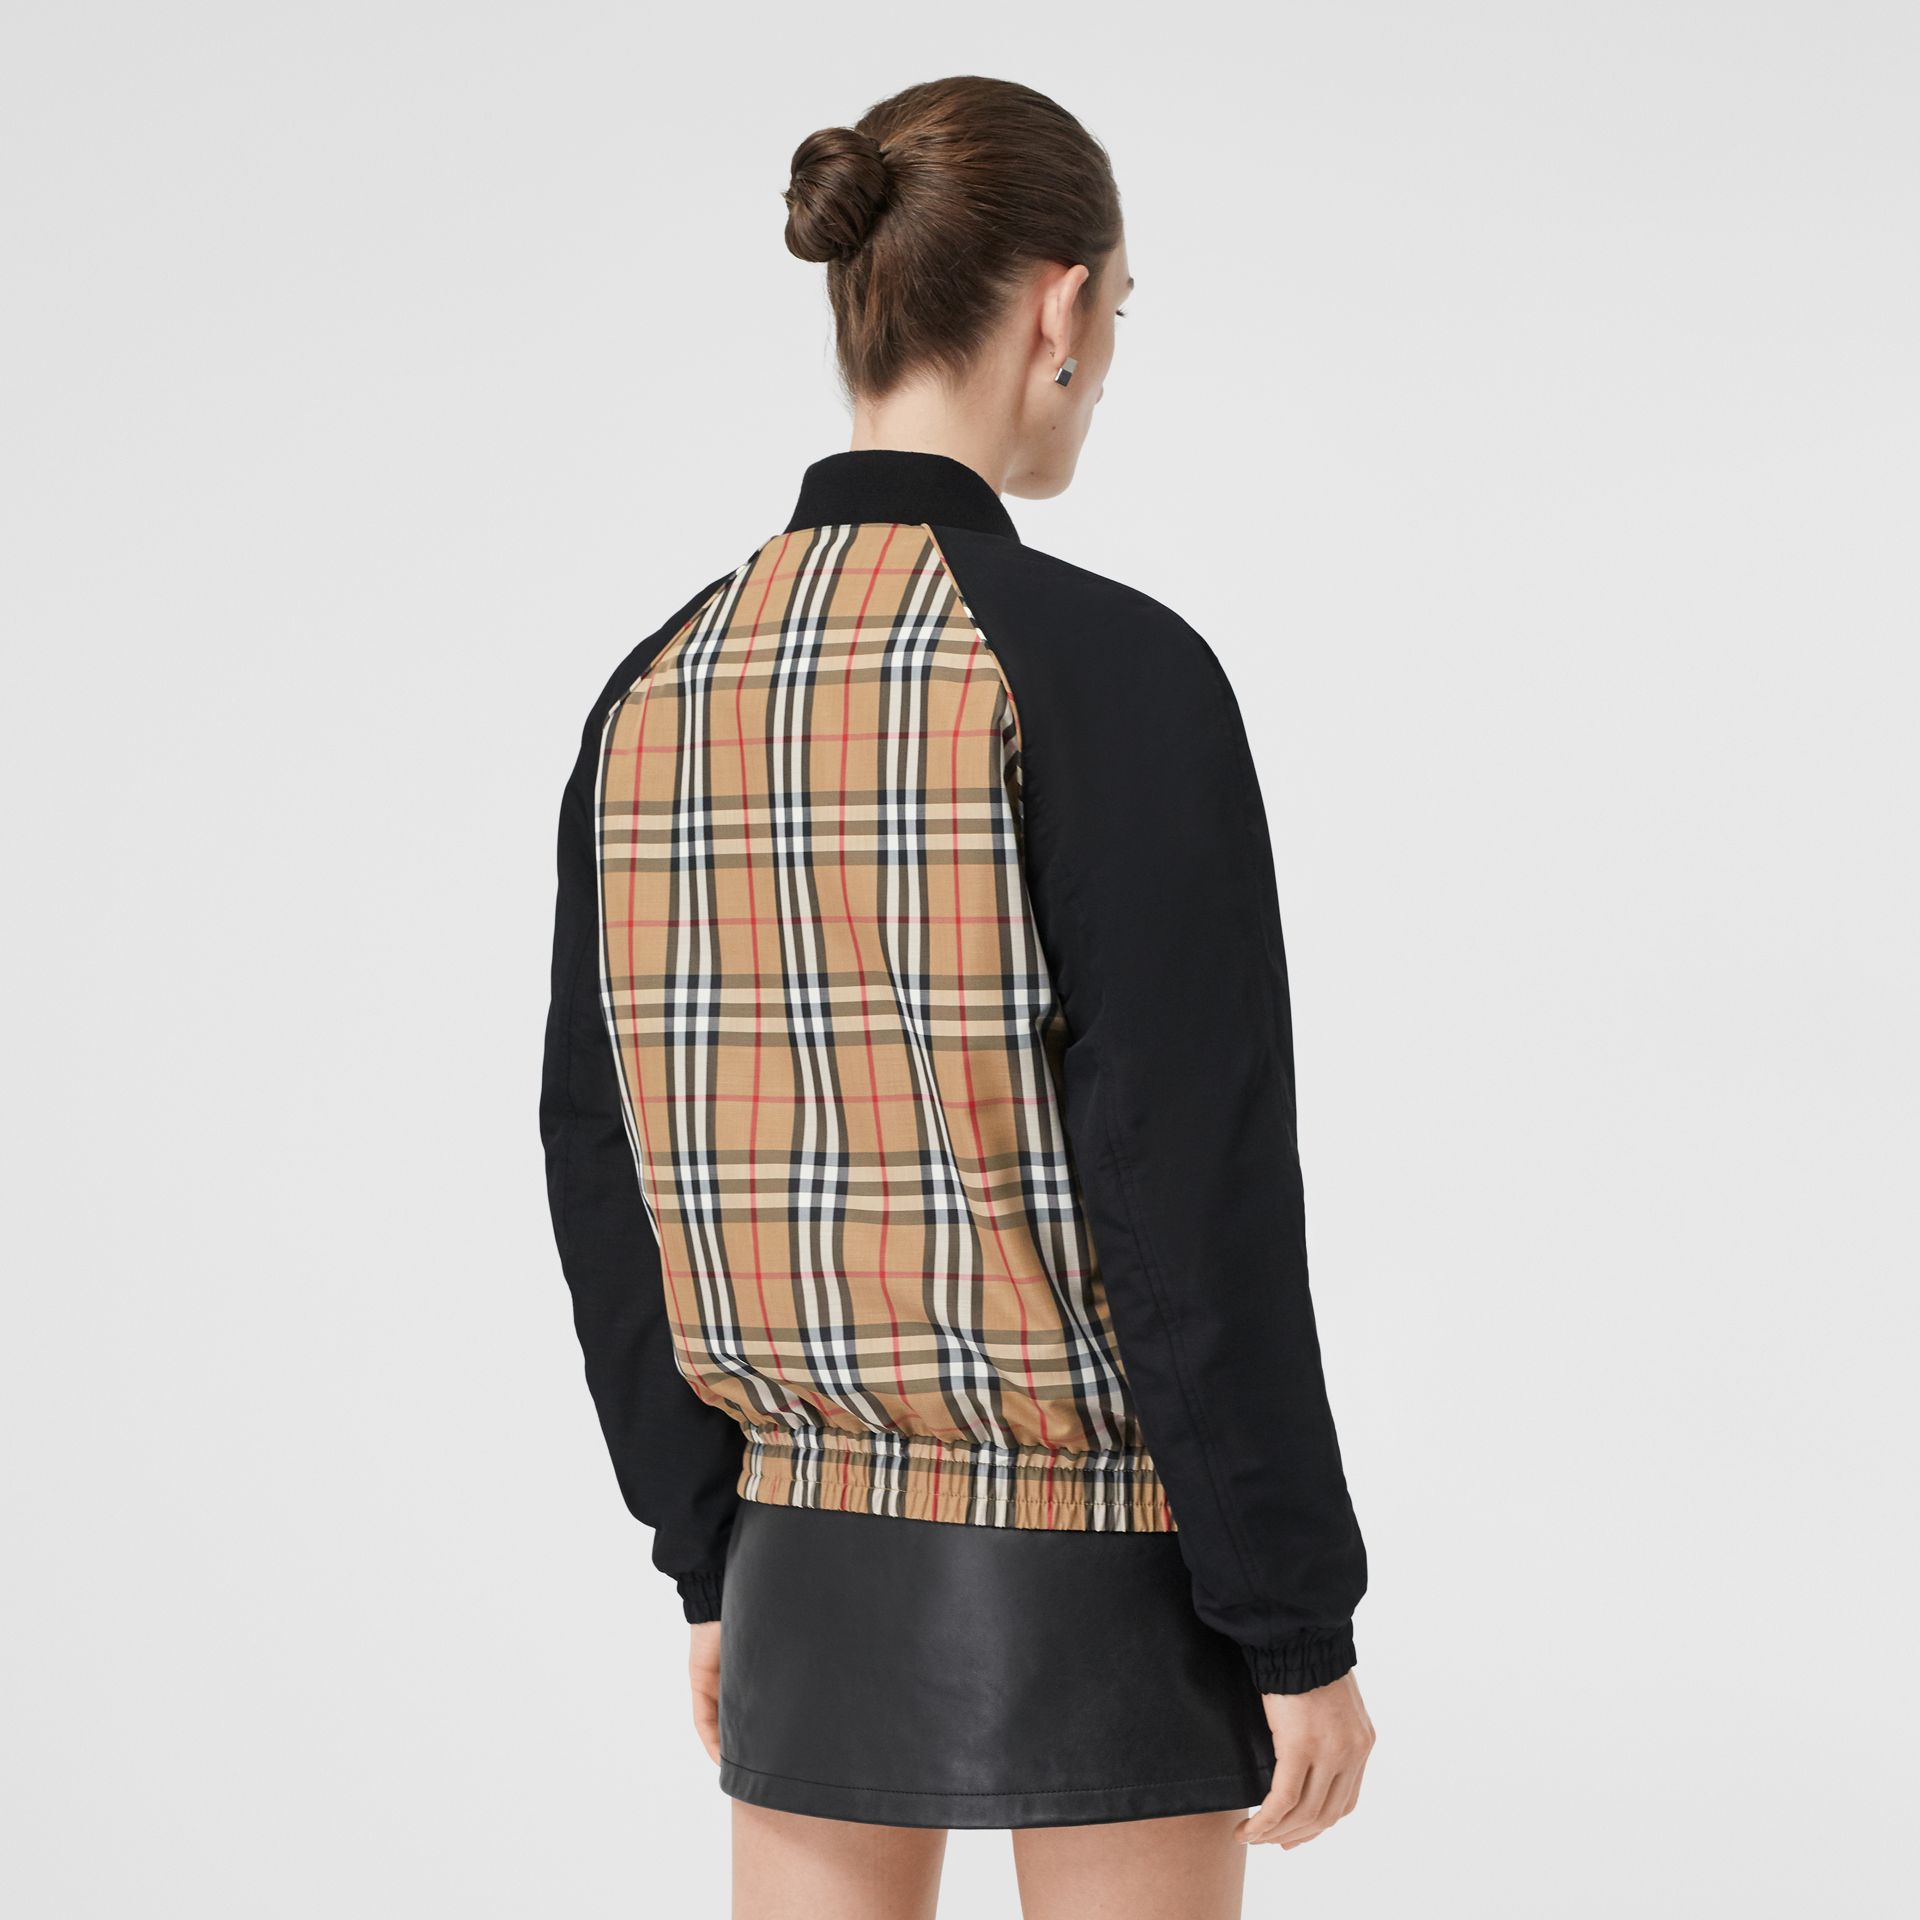 Monogram Motif Vintage Check Bomber Jacket in Black - Women | Burberry Australia - gallery image 2